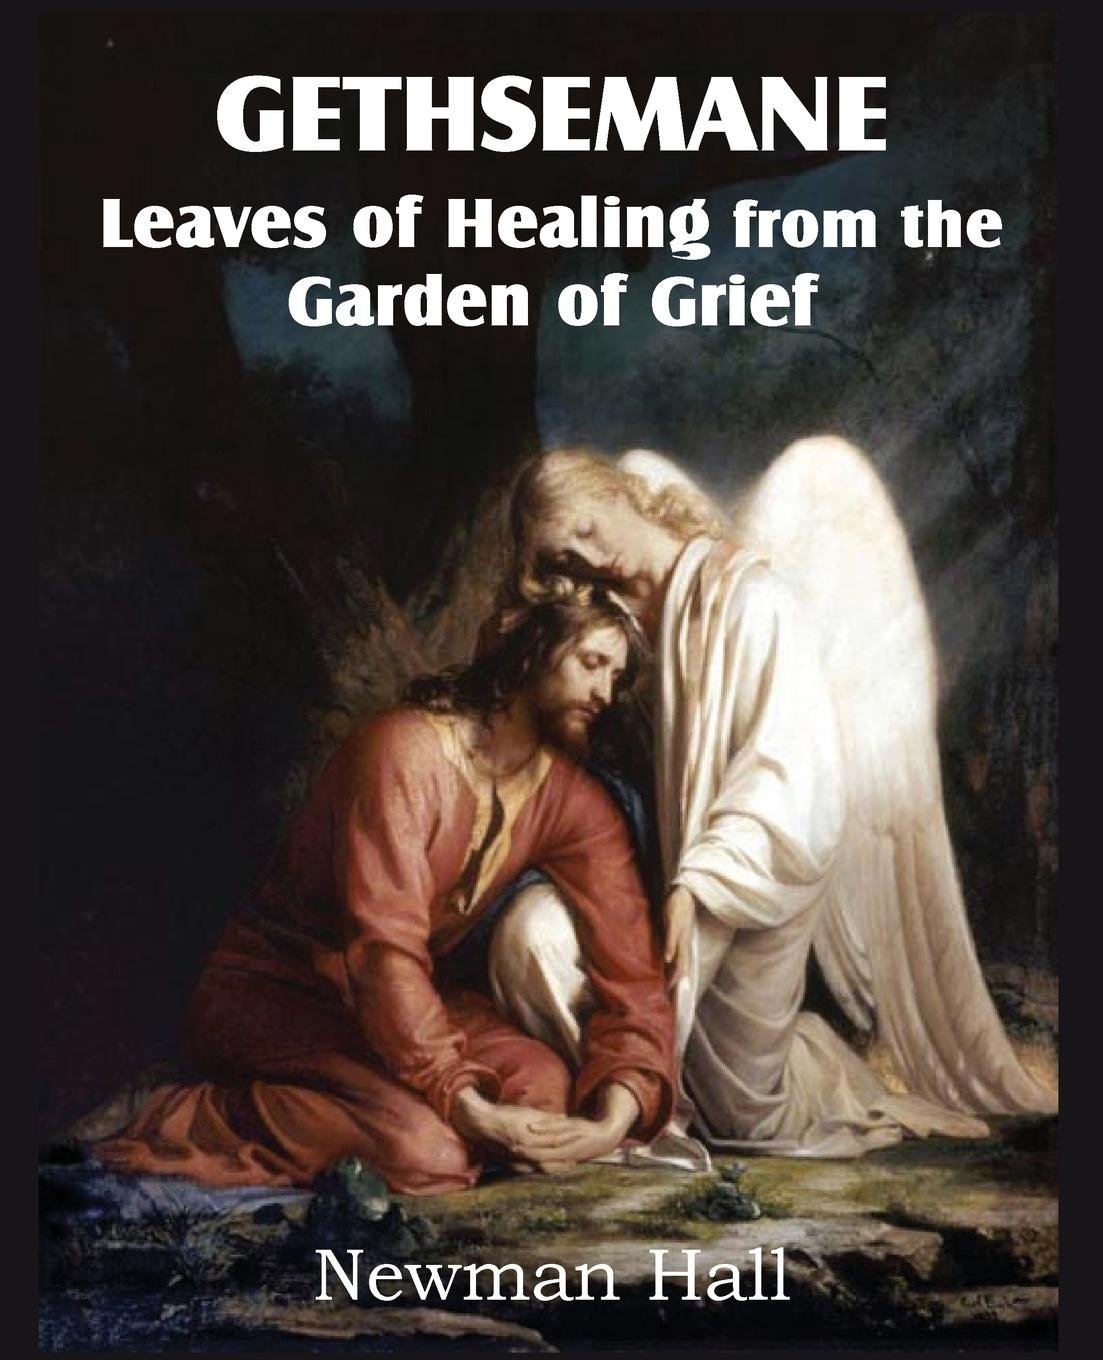 Newman Hall Gethsemane; Leaves of Healing from the Garden of Grief ellen fannin opening prayers 52 weeks of inspiration